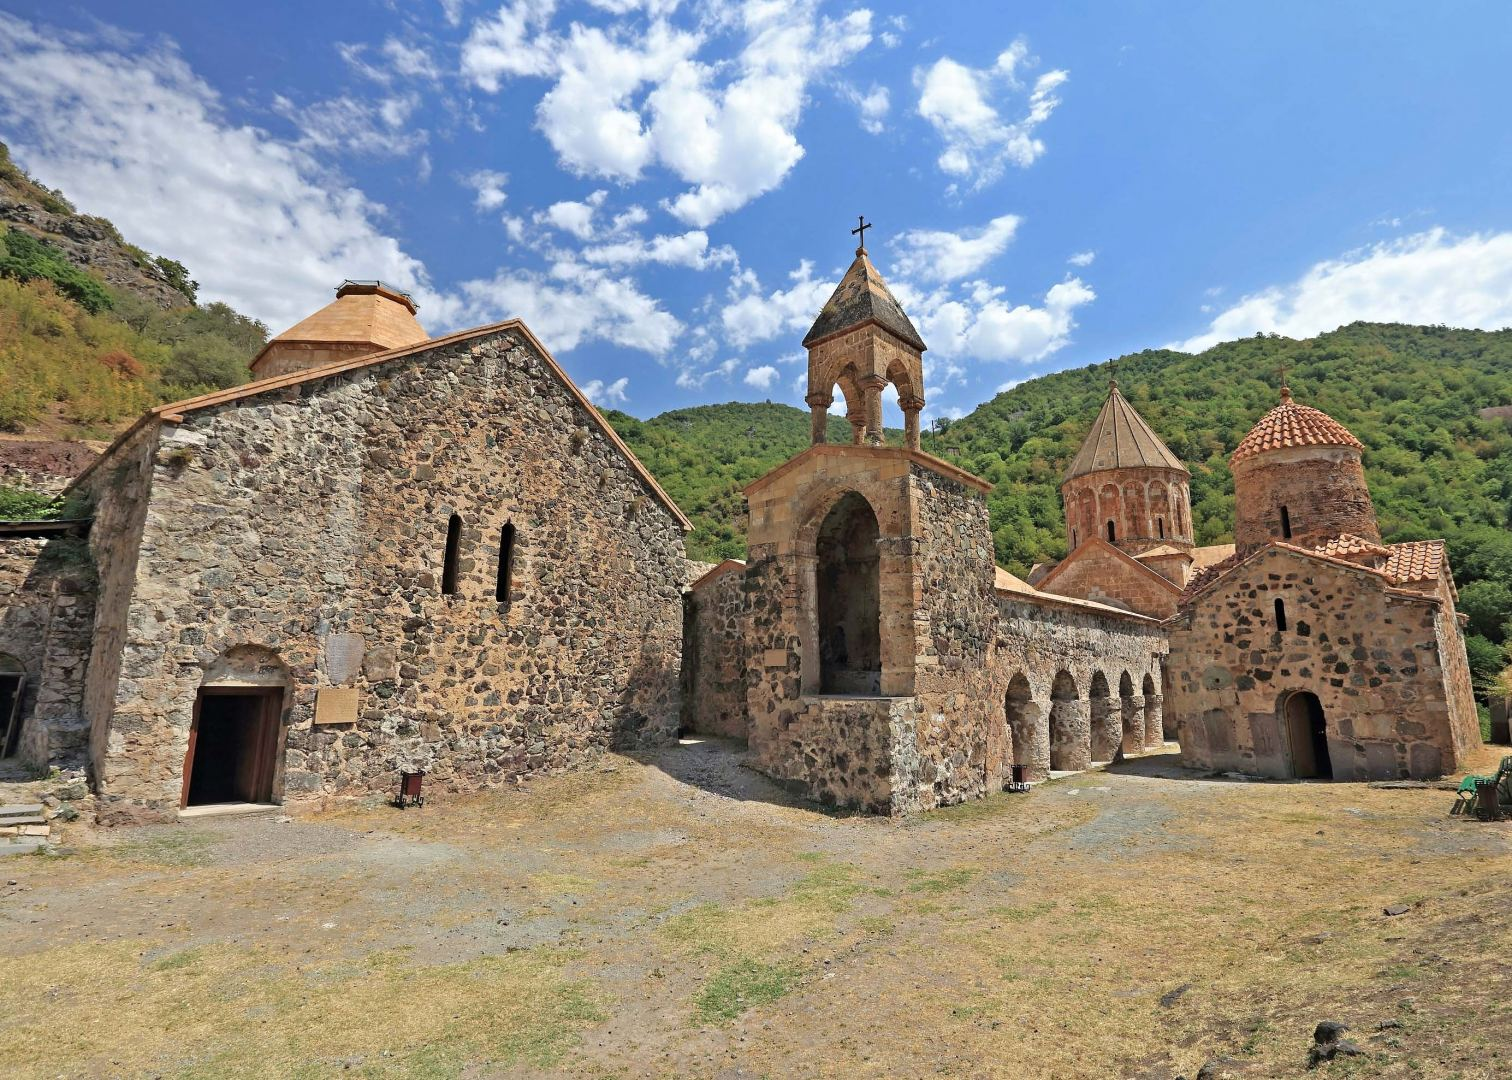 All traces related to temple in Kalbajar show its non-belonging to Armenia - historian